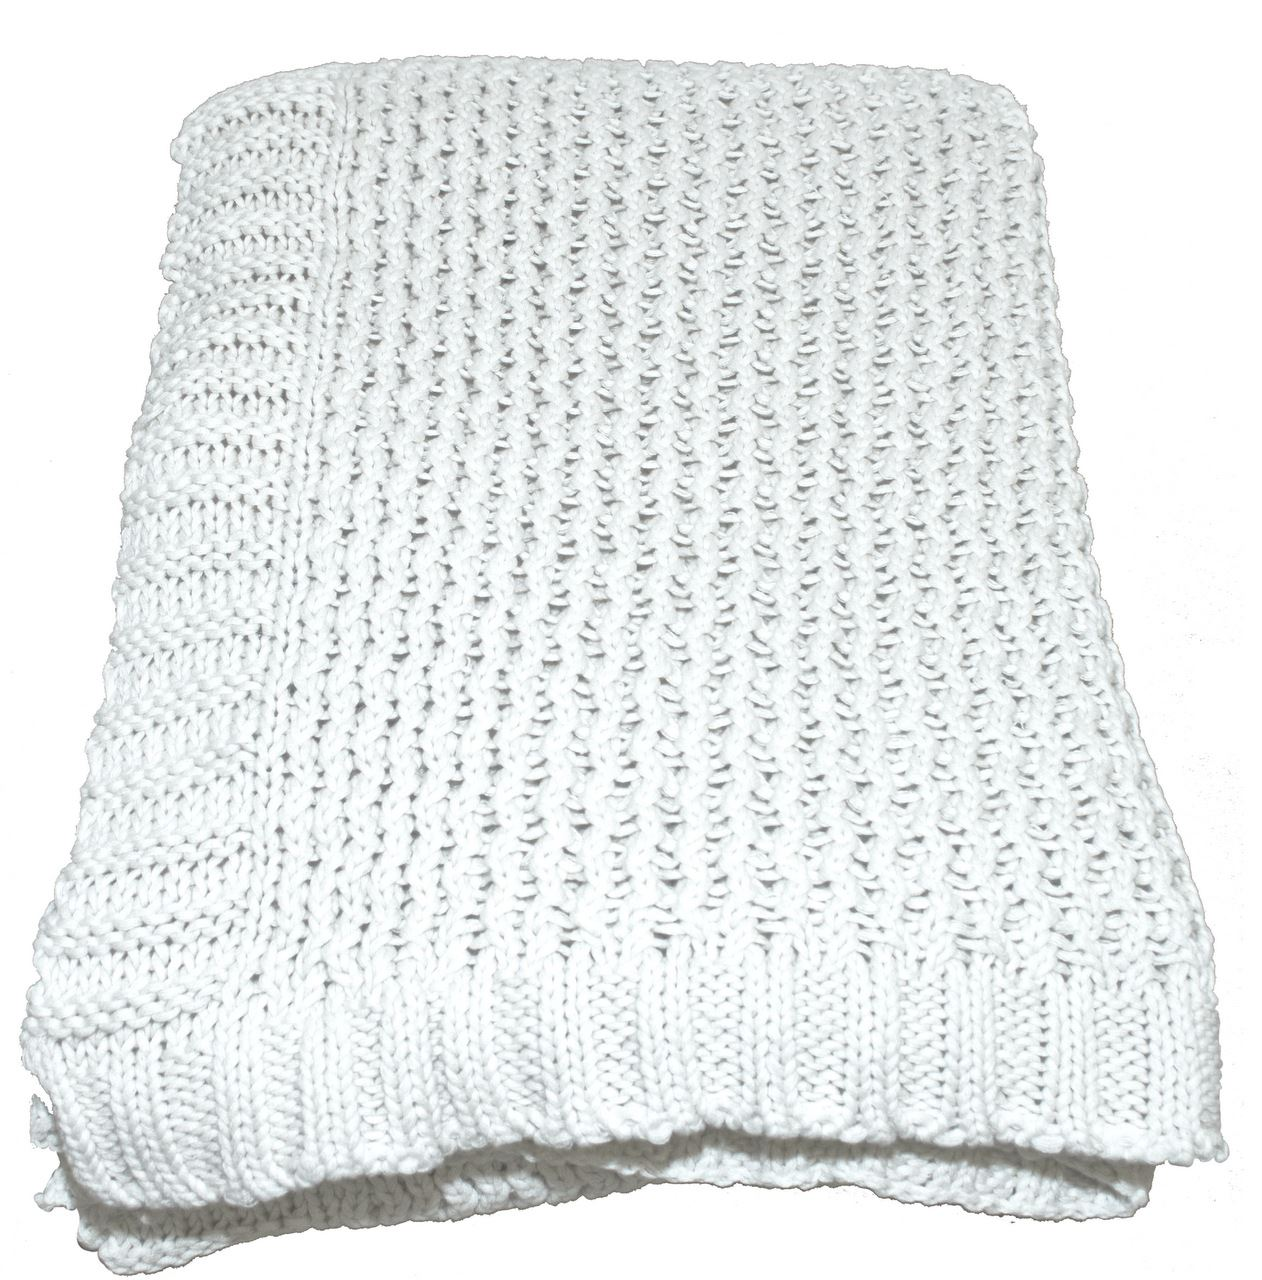 Natural Tinke Stitch Throw